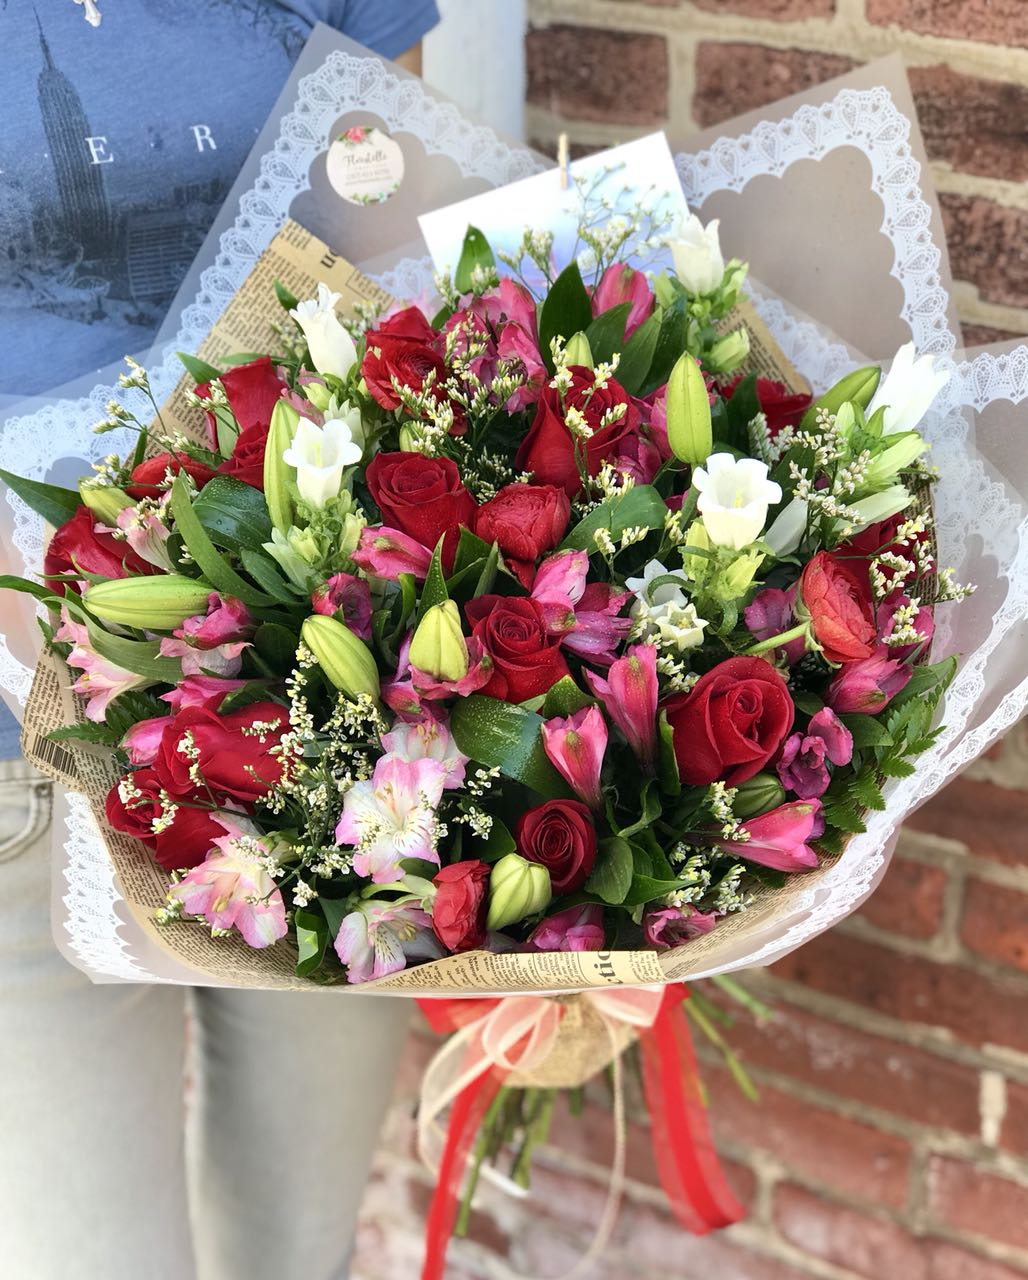 "Whether for your significant other or your sister, aunt or grandmother, this delightful floral gift is a sweet way to say ""I love you.""  Includes:  Red roses, bells, pink alstroemeria, white lilies, limonium, assorted greens. Wrapped in craft paper. Free message card"